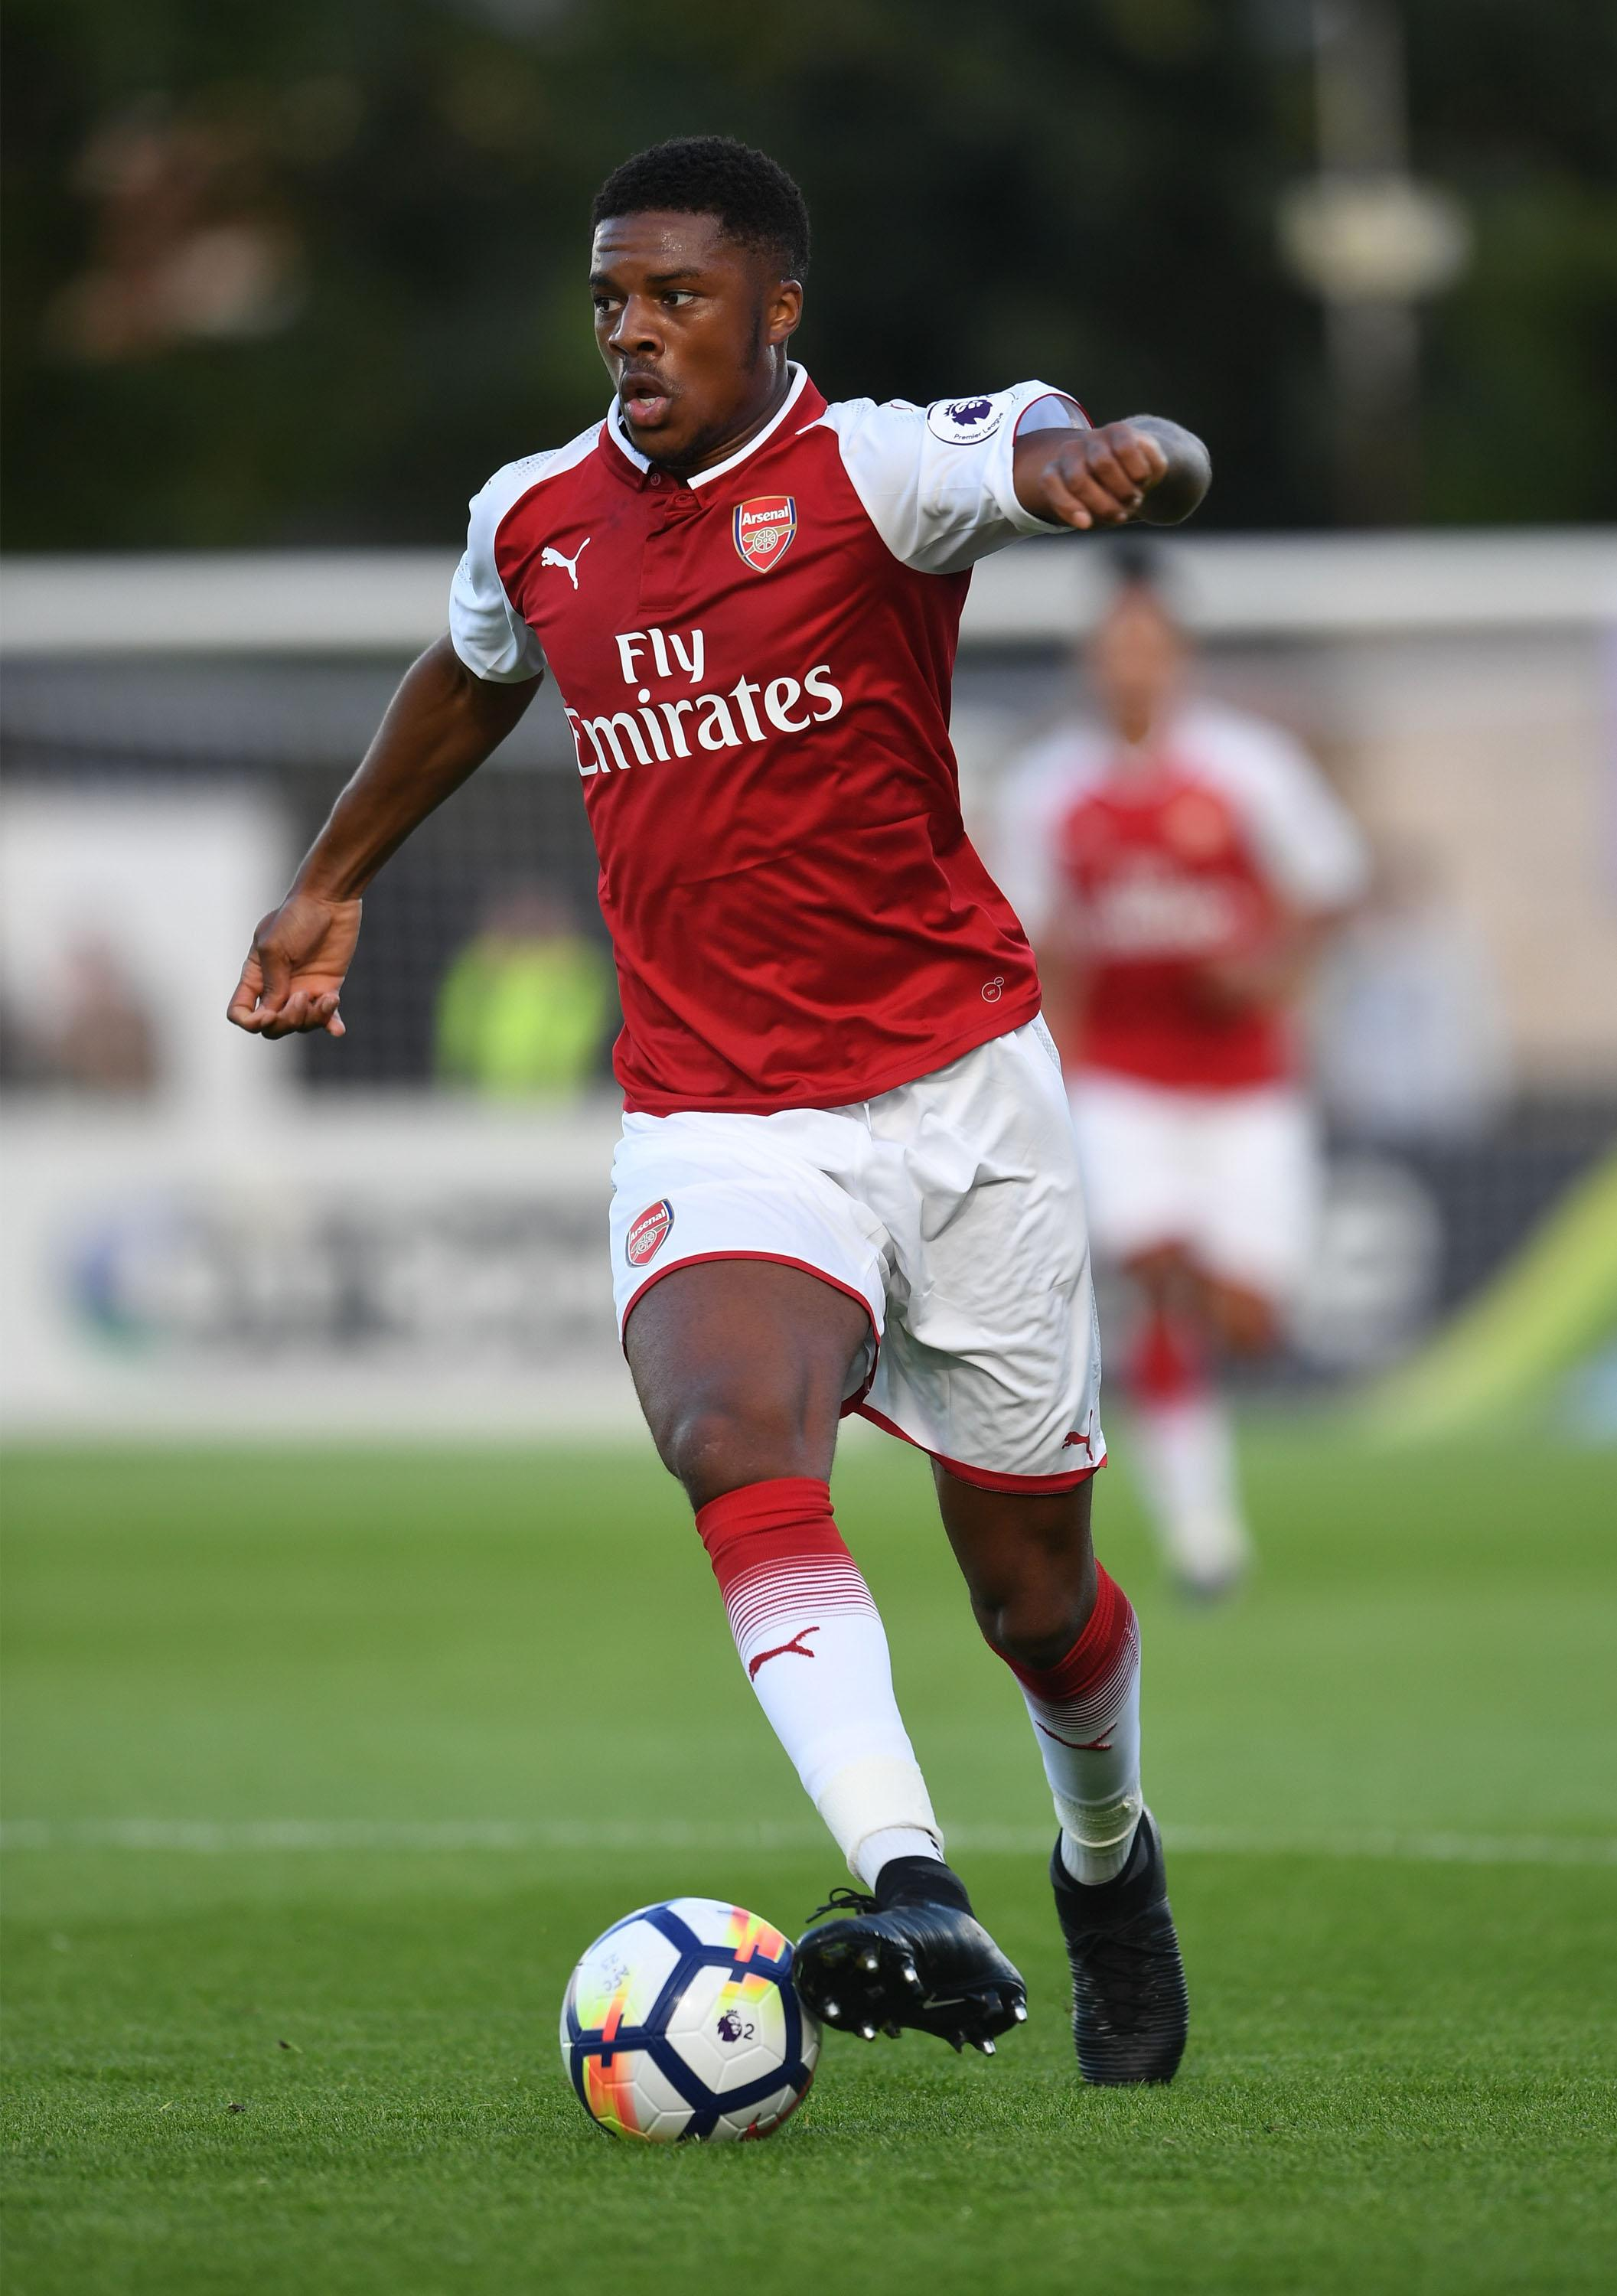 Arsenal striker Chuba Akpom is reportedly closing in on a move to join PAOK